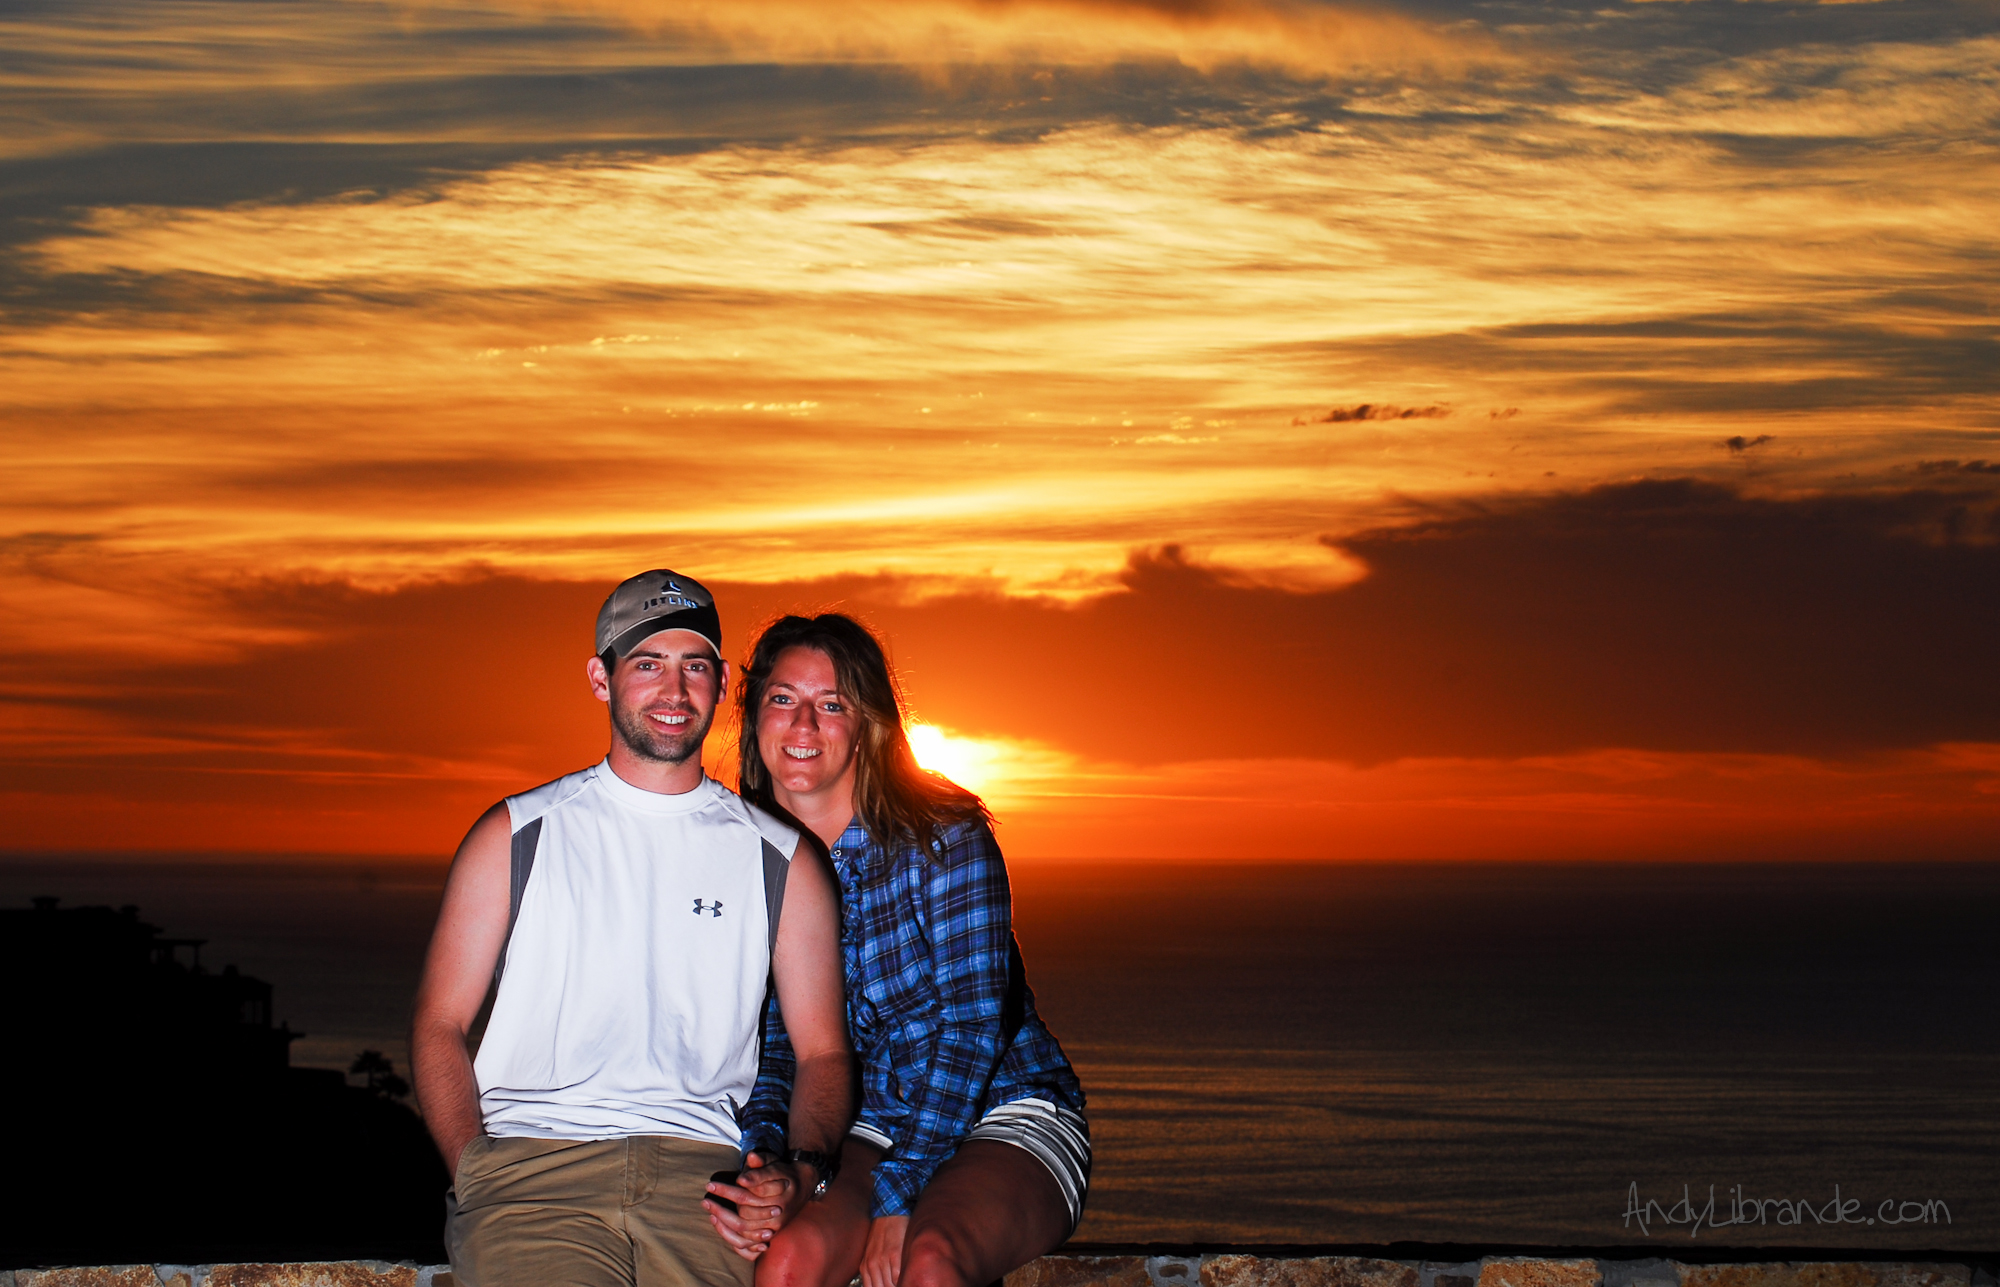 Whit and Andrew with a beautiful sunrise over Cabo San Lucas